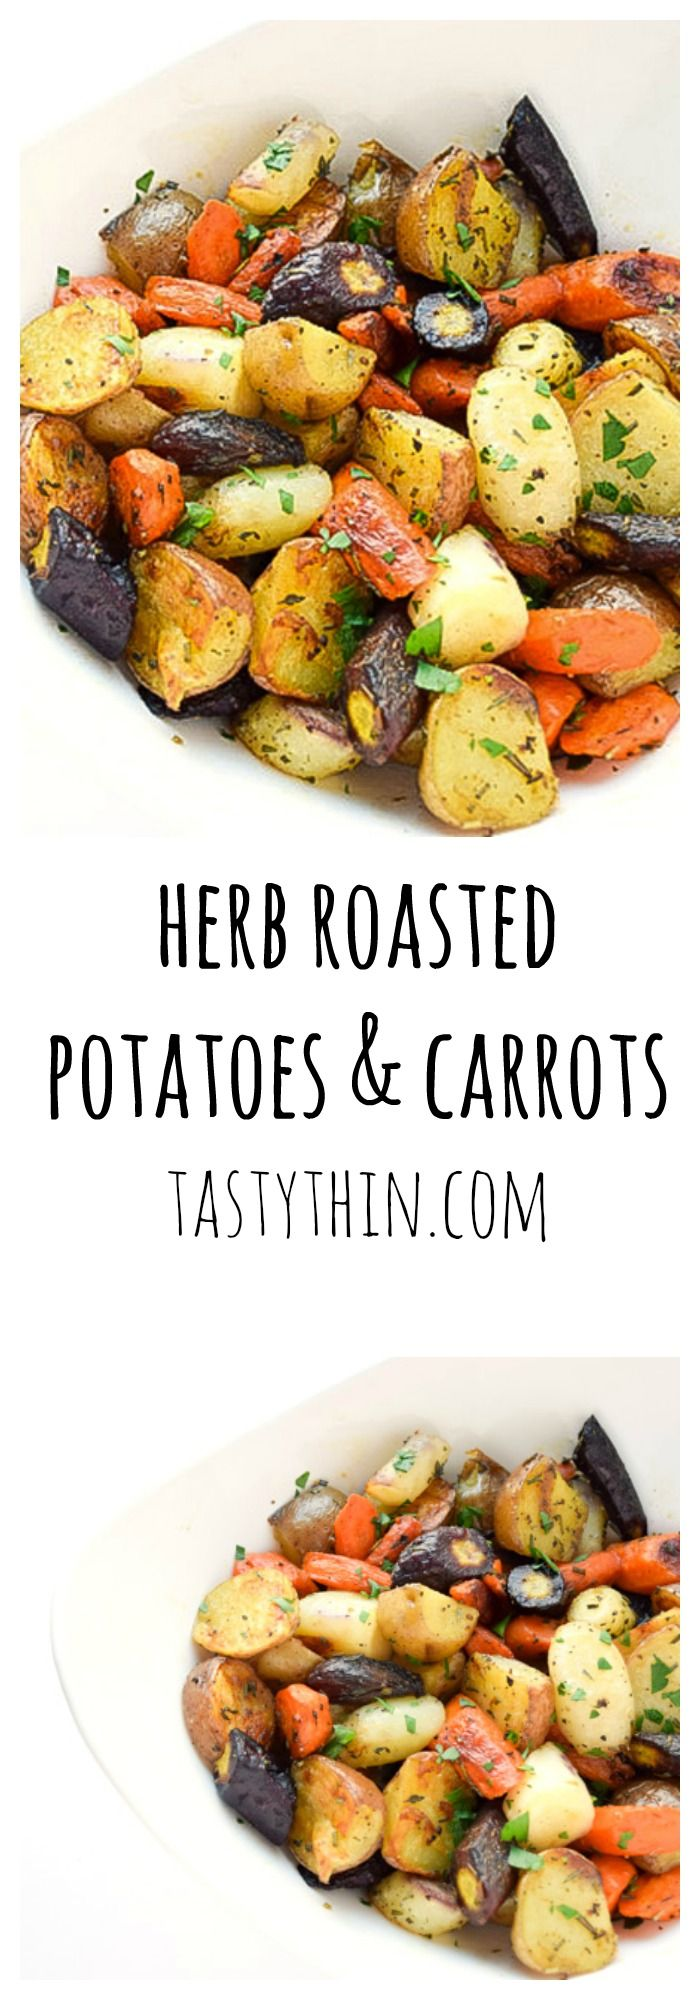 Herb Roasted Potatoes & Carrots - a fresh, tasty side dish - simple, yet fancy, and perfect with grilled meat. | tastythin.com